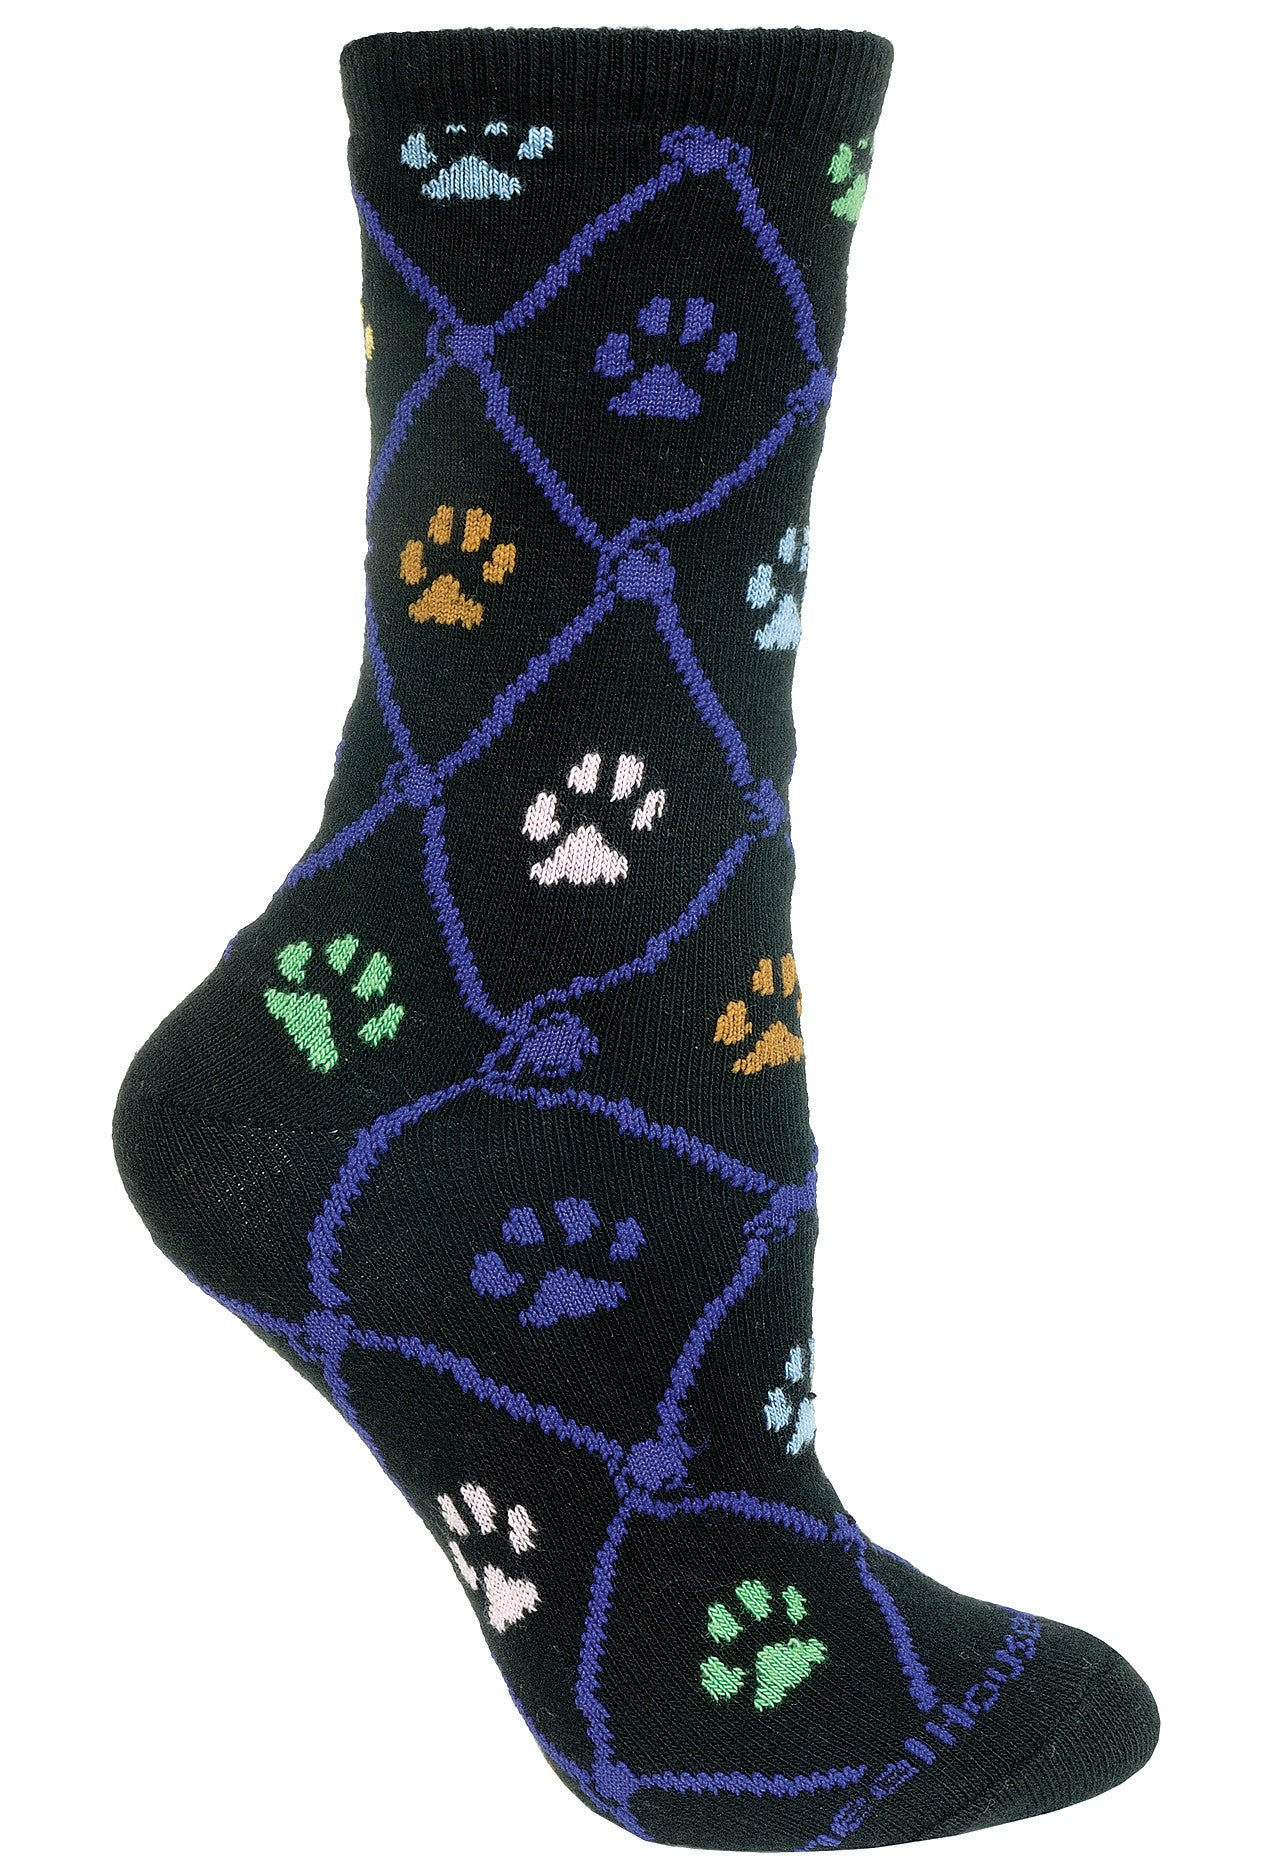 Cat Paws on Black Socks